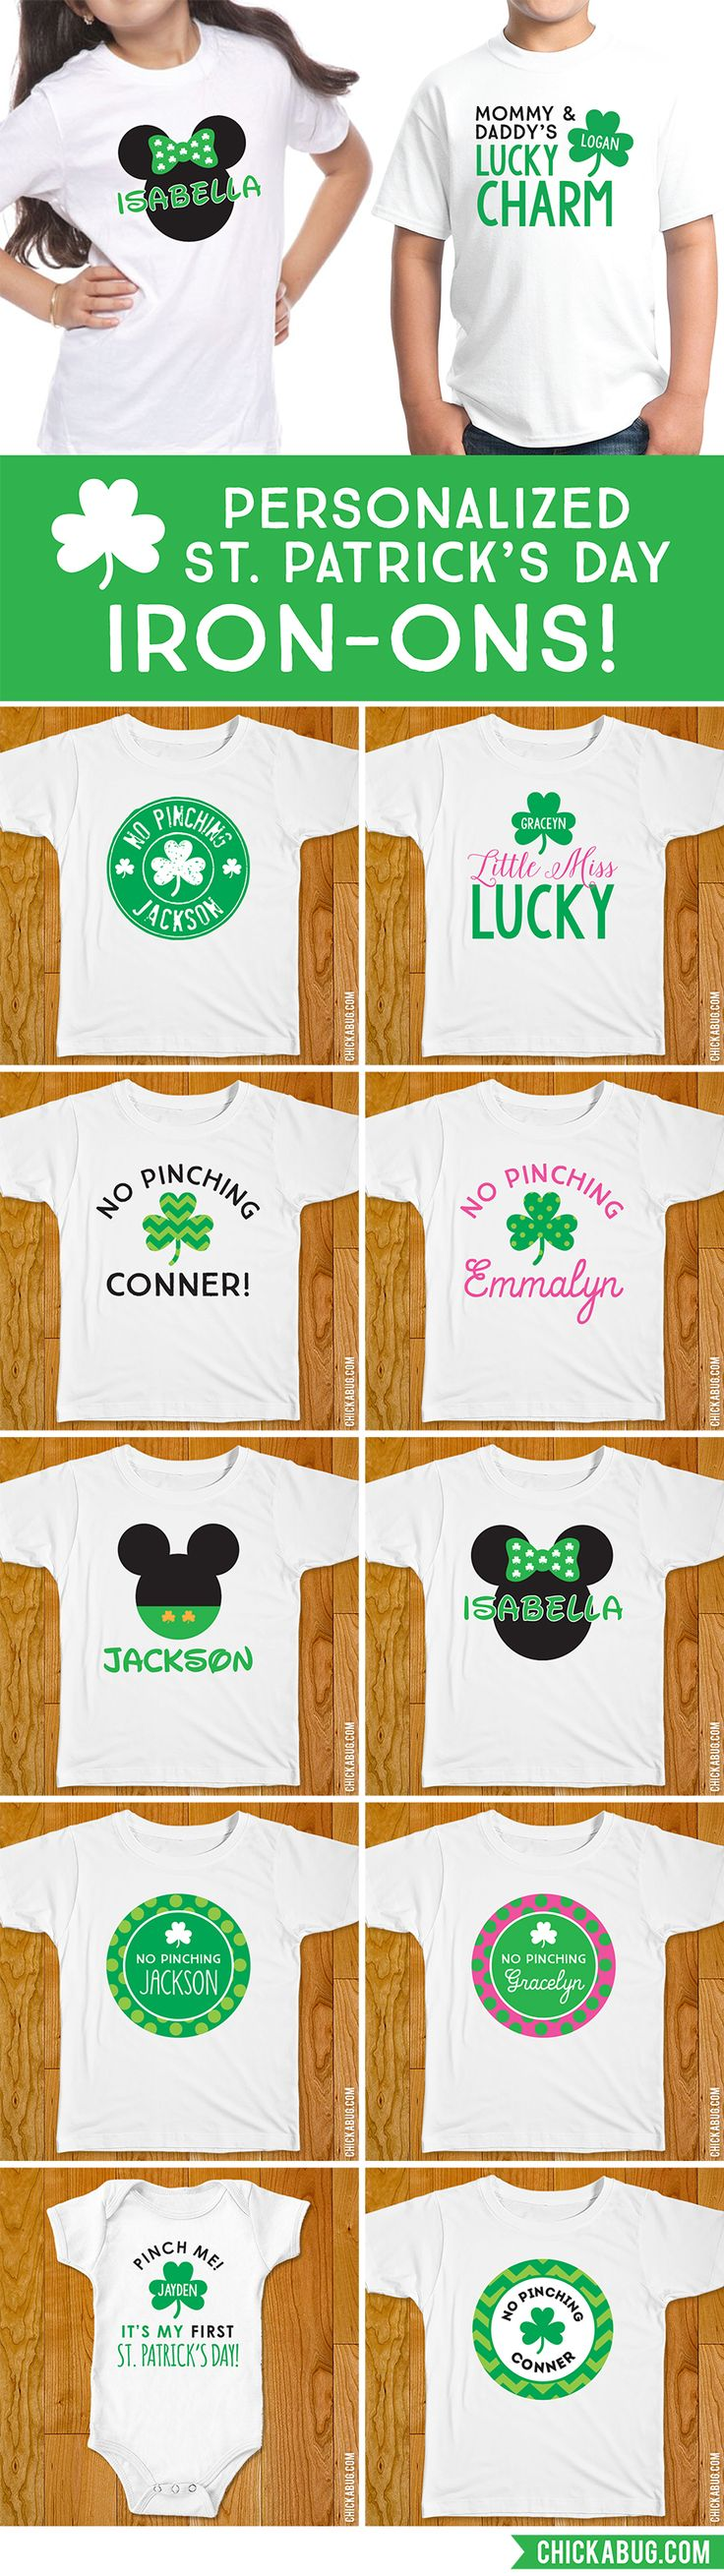 St. Patrick's Day iron-ons! They come in t-shirt AND onesie size. Printed and shipped to you. LOVE THESE!